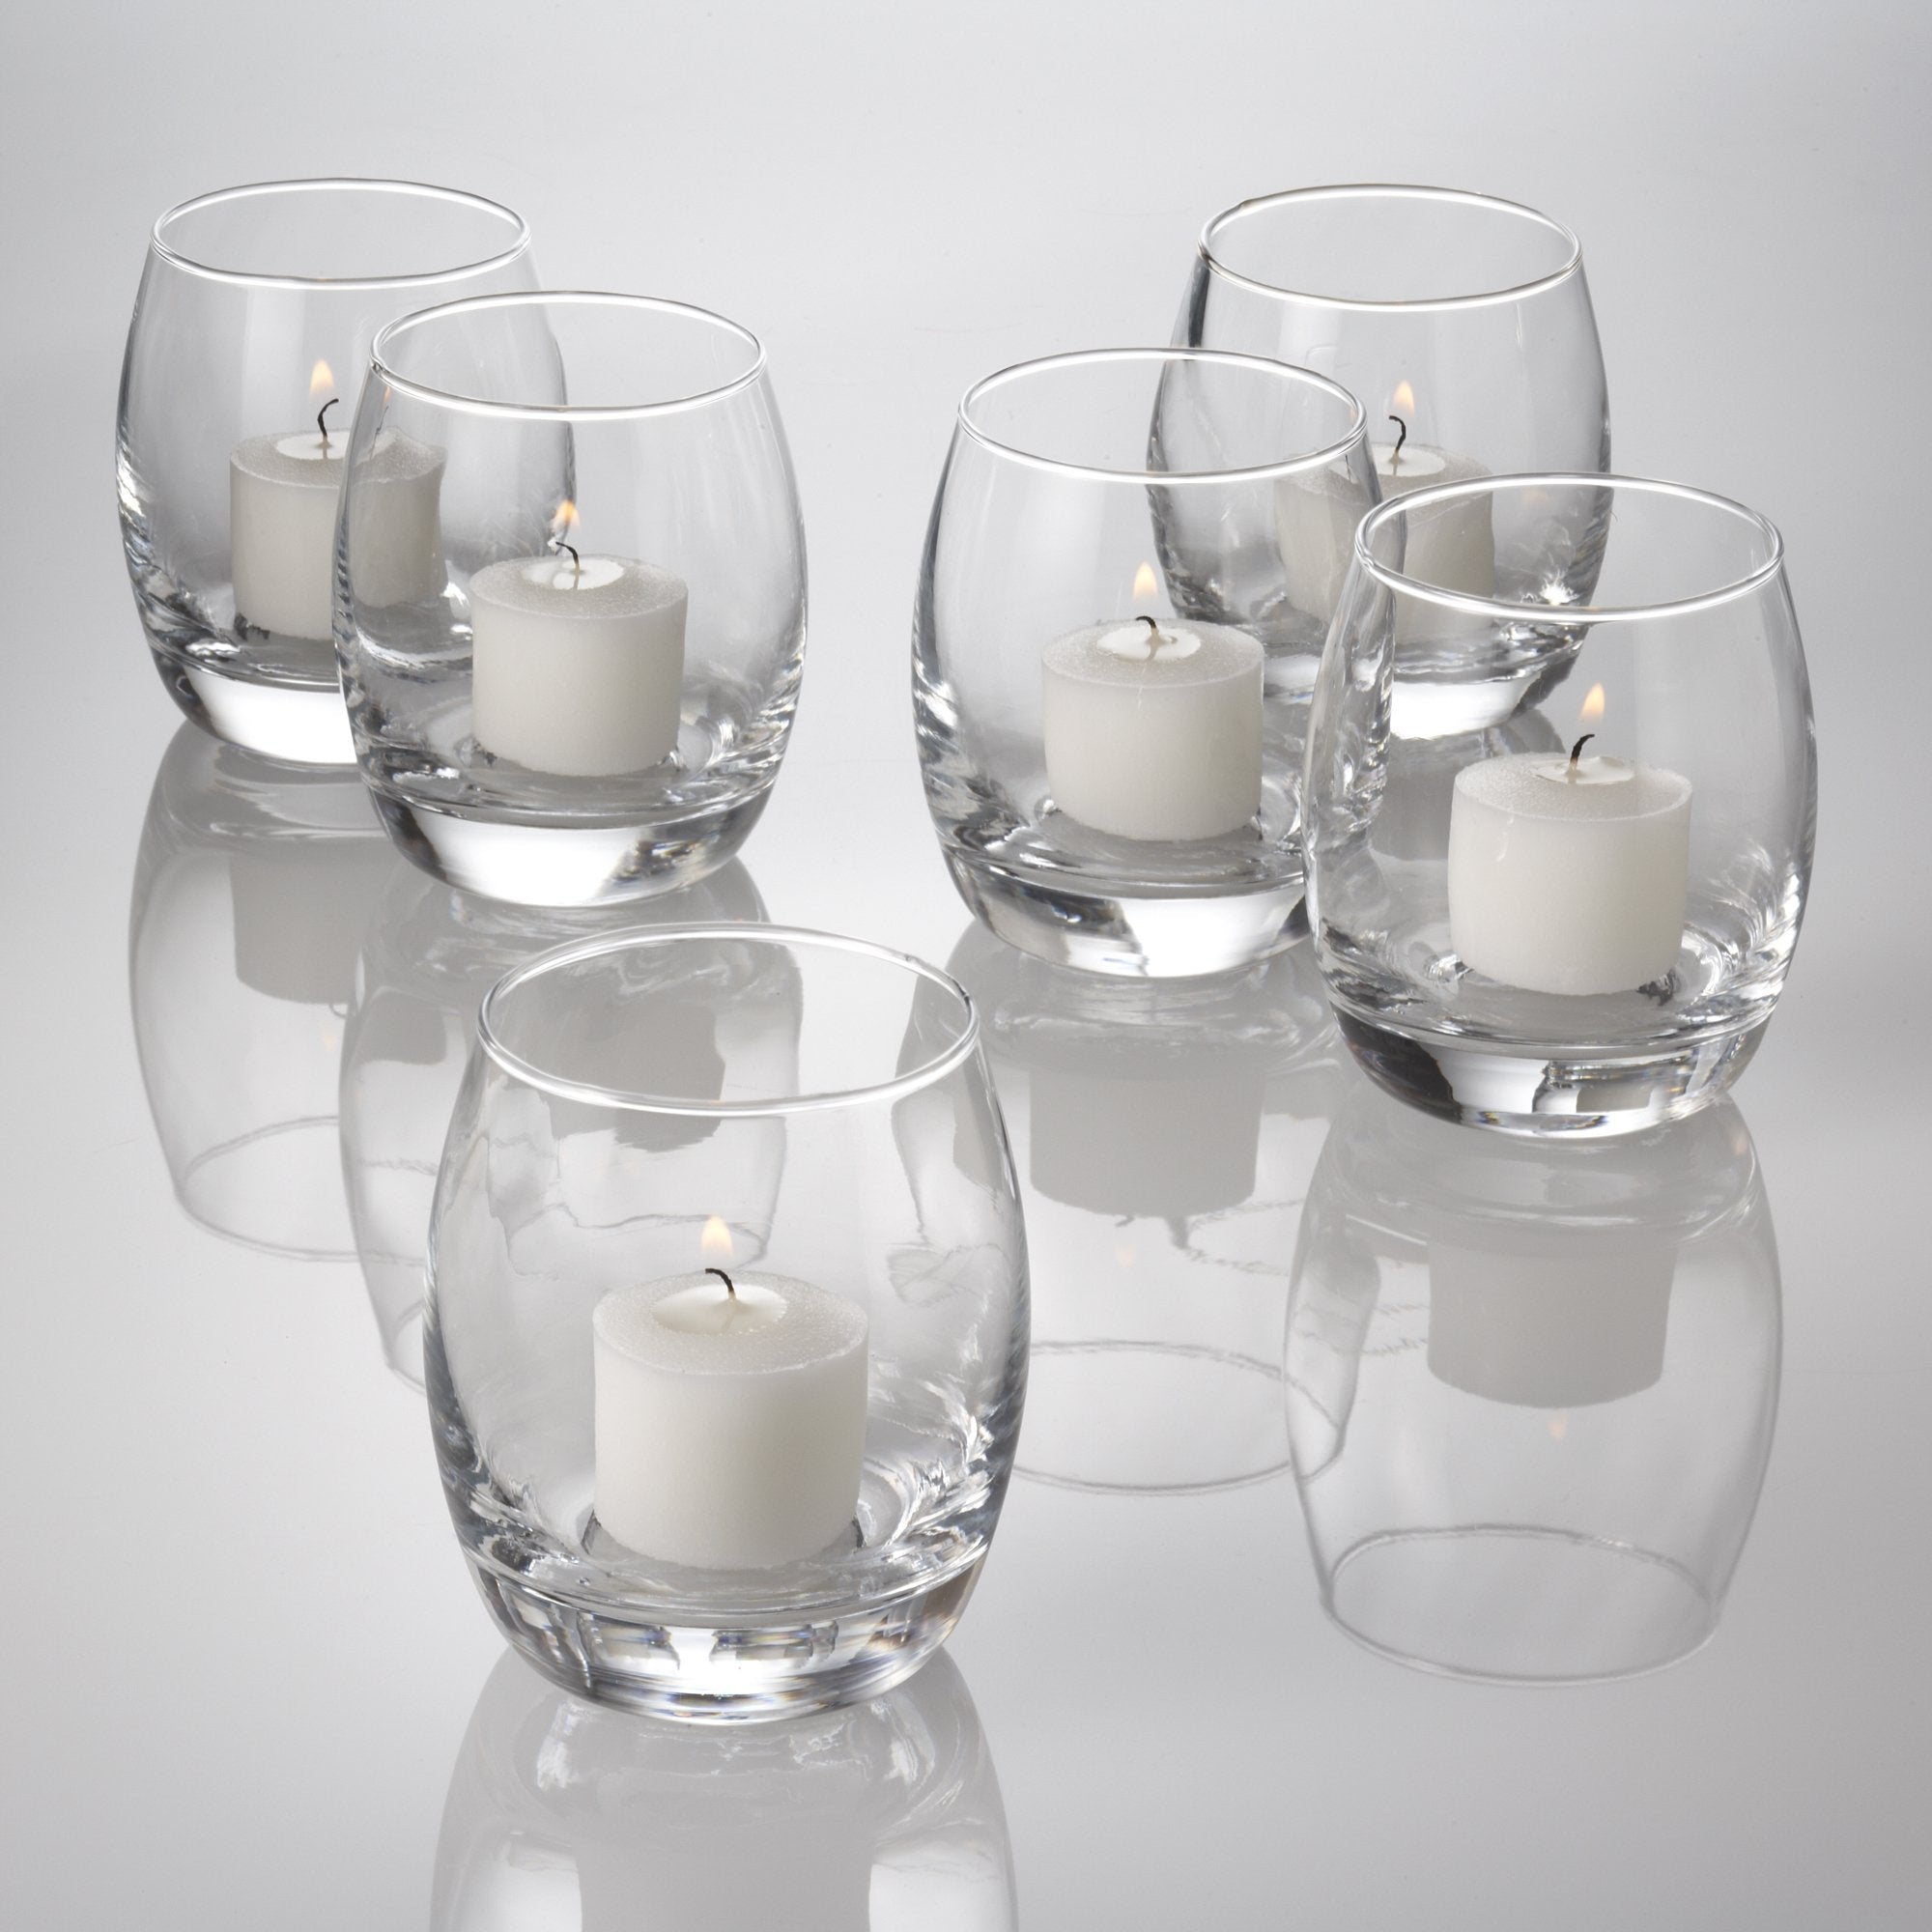 Votive Candle Holder Candle Holder Glass Holder Quick Candles